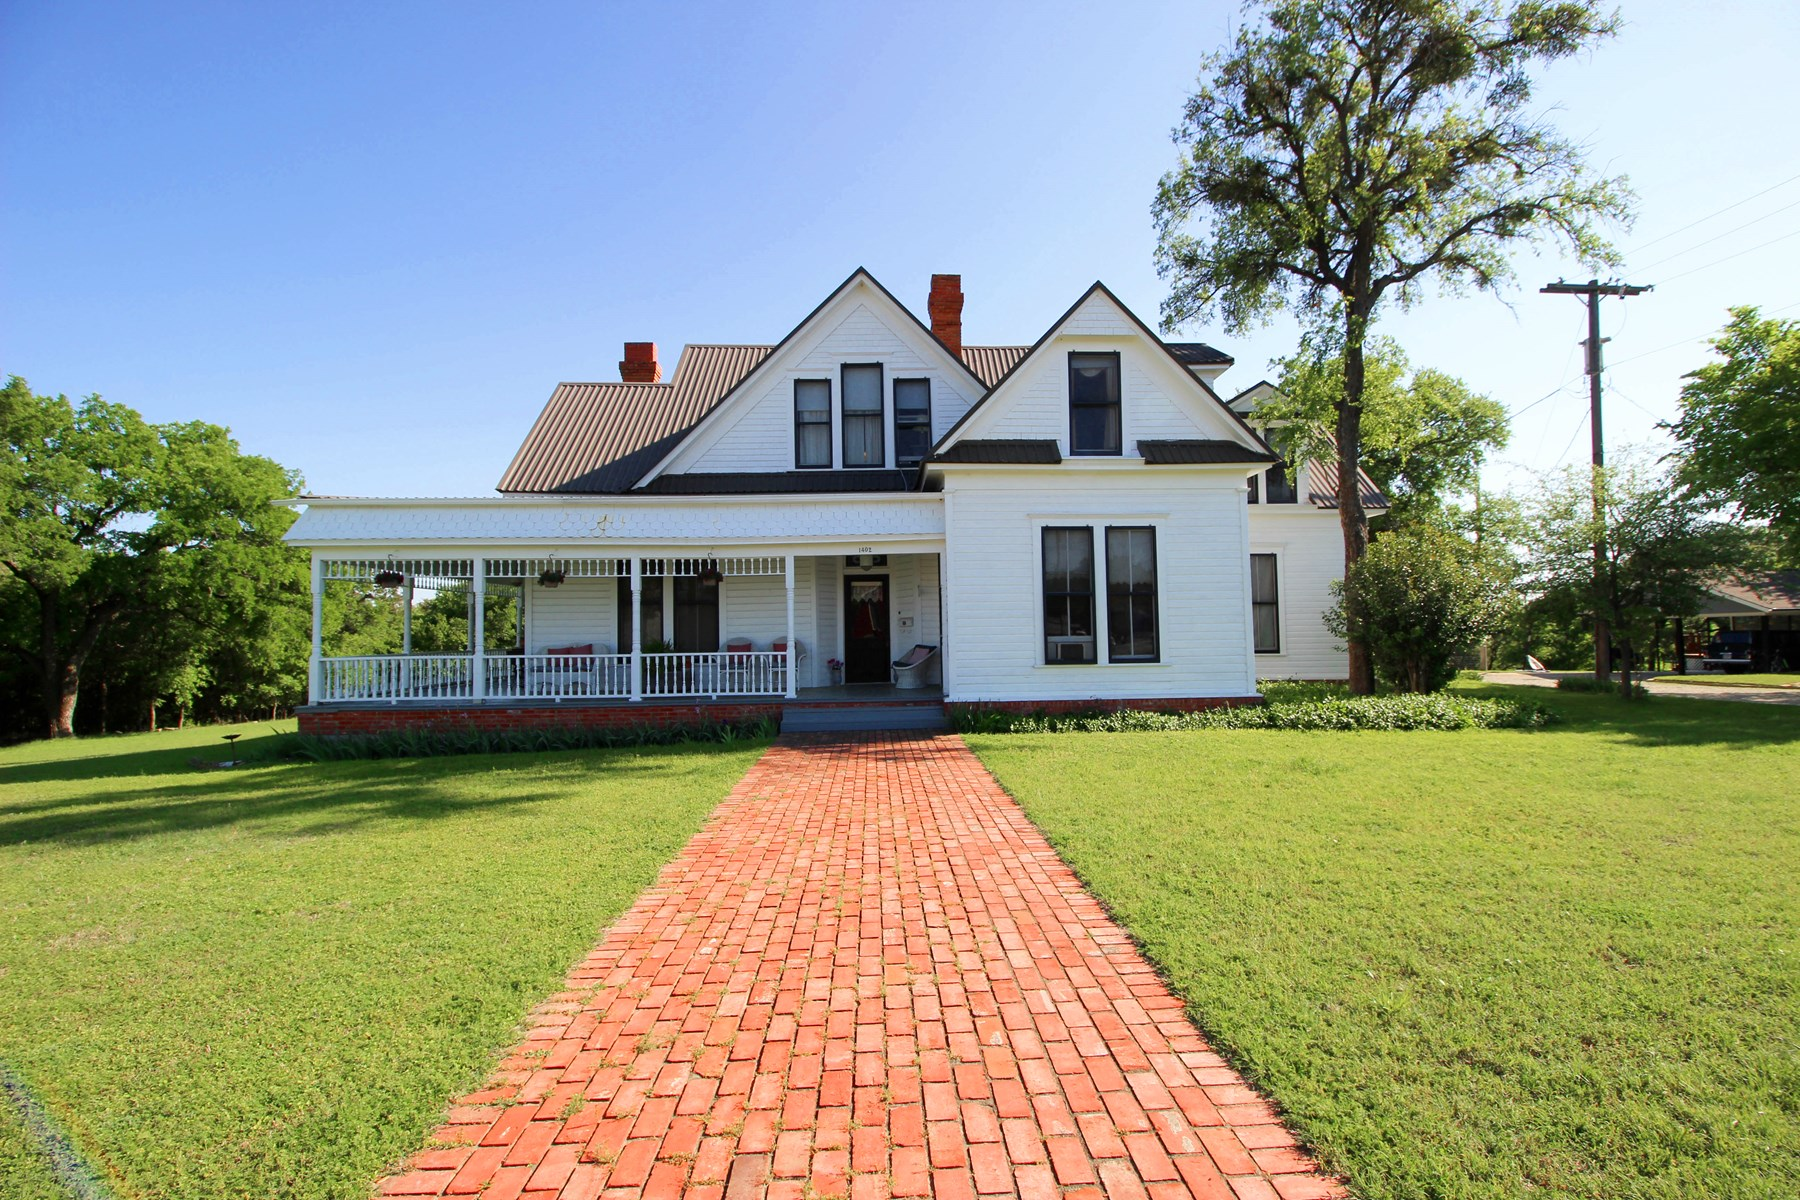 Historical Home Victorian Style in Gatesville